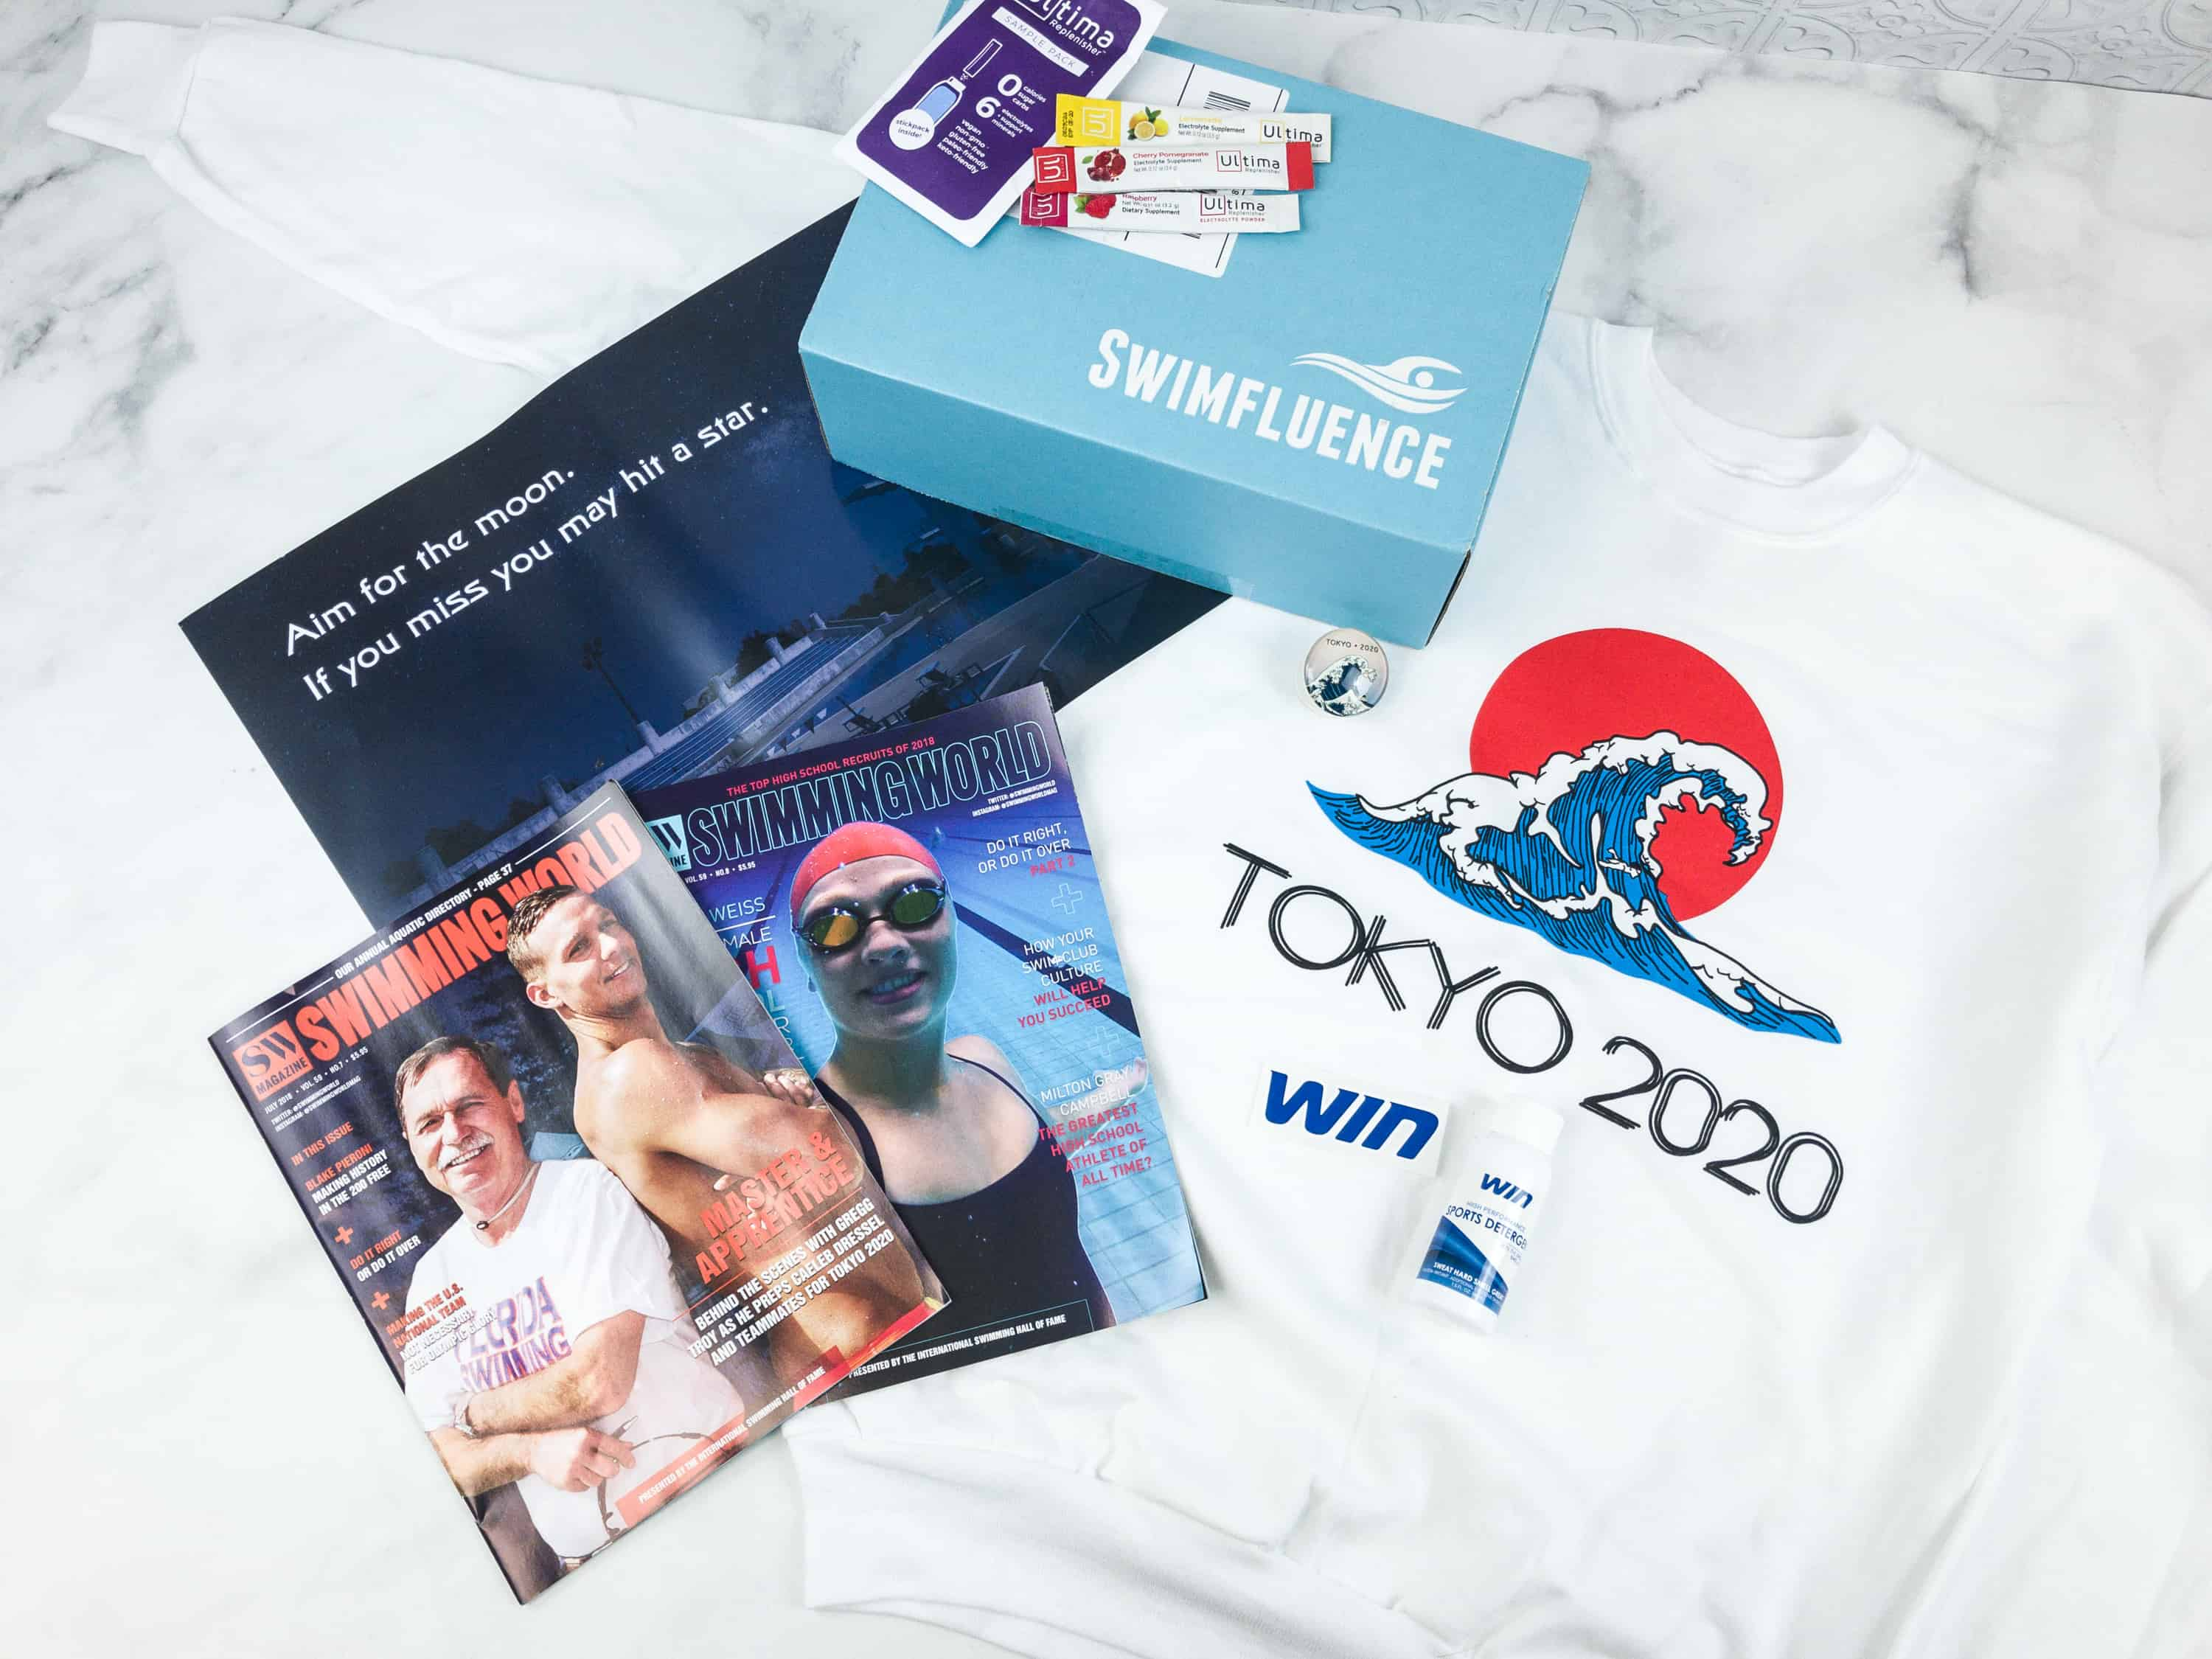 Swimfluence August 2018 Subscription Box Review